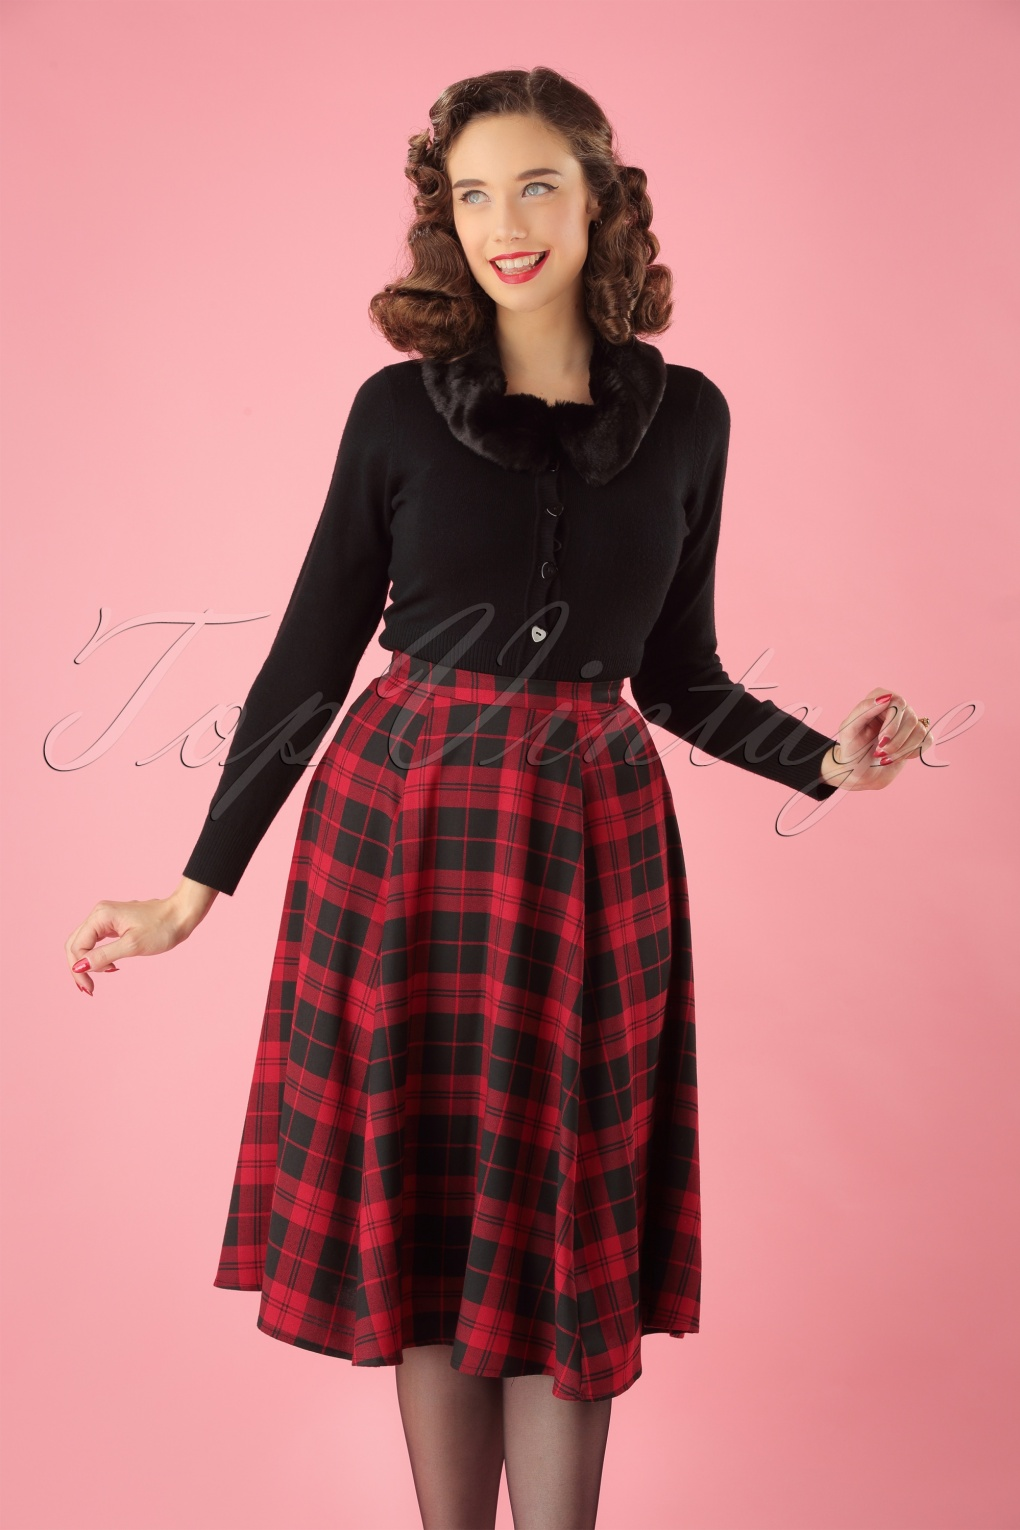 1950s Swing Skirt, Poodle Skirt, Pencil Skirts 50s Matilde Rebel Check Swing Skirt in Black and Red £43.48 AT vintagedancer.com